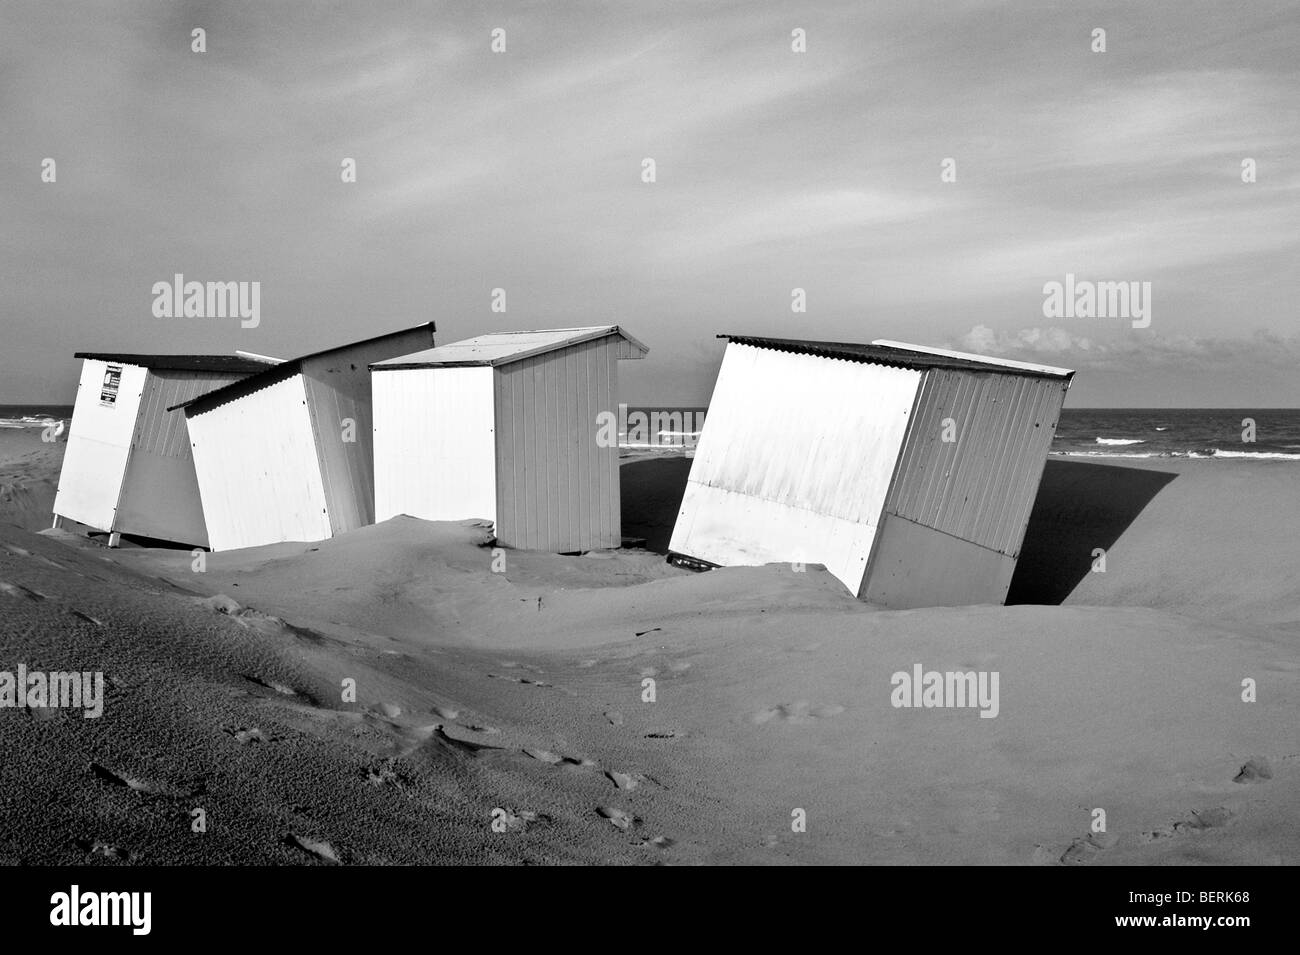 Row of white beach cabins along the North Sea coast at seaside resort Koksijde / Coxyde, West Flanders, Belgium - Stock Image